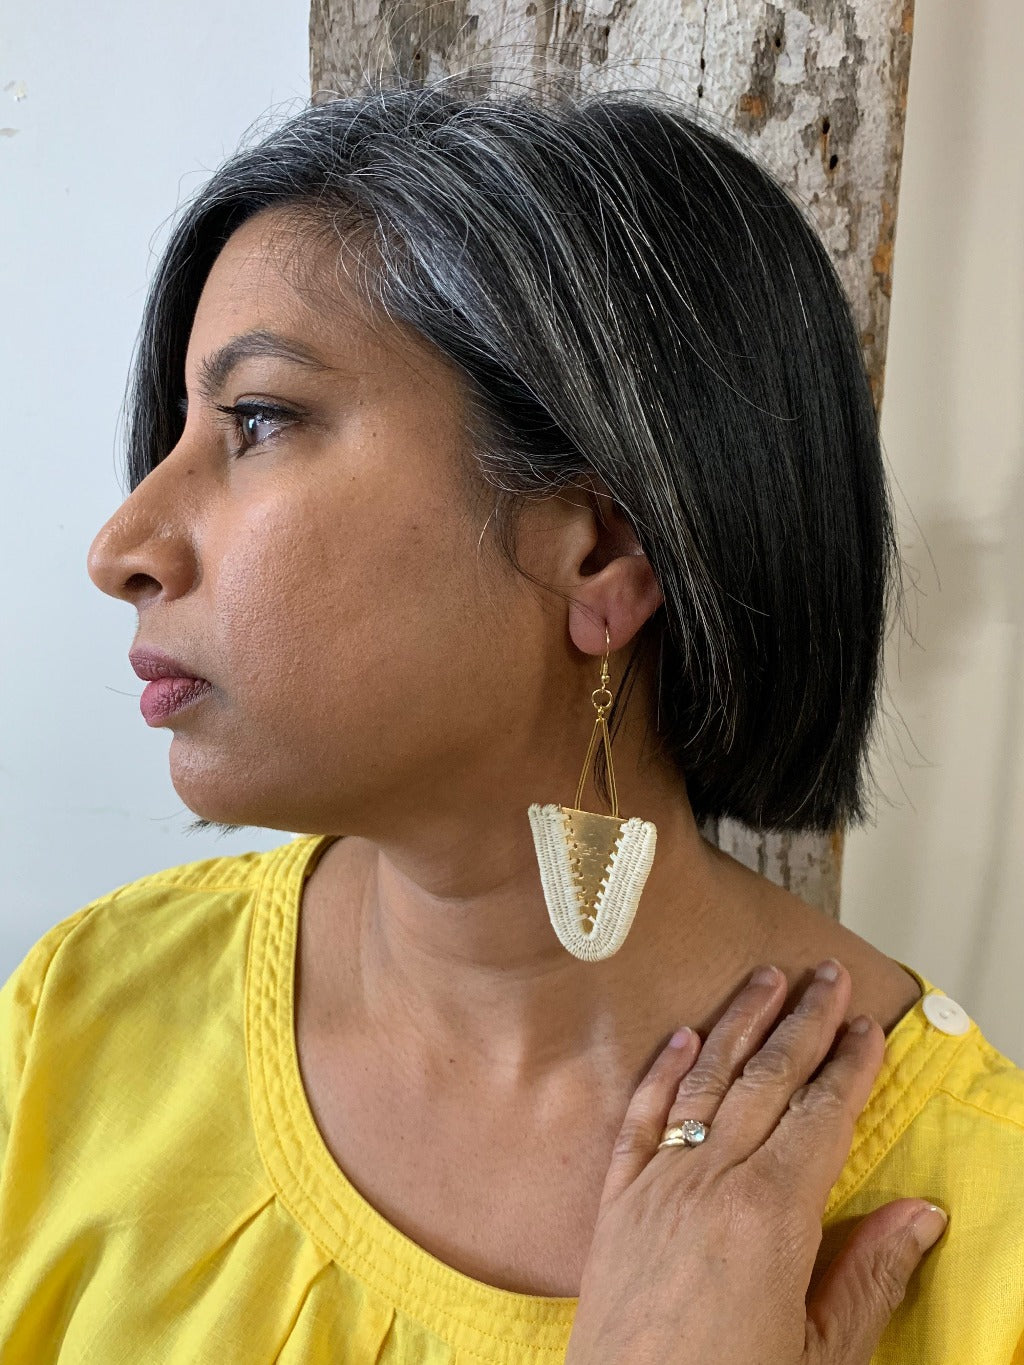 Isabel woven earrings jewelry unique fashion handmade artisan fair trade colombia giveback gold white natural beige ethical sustainable